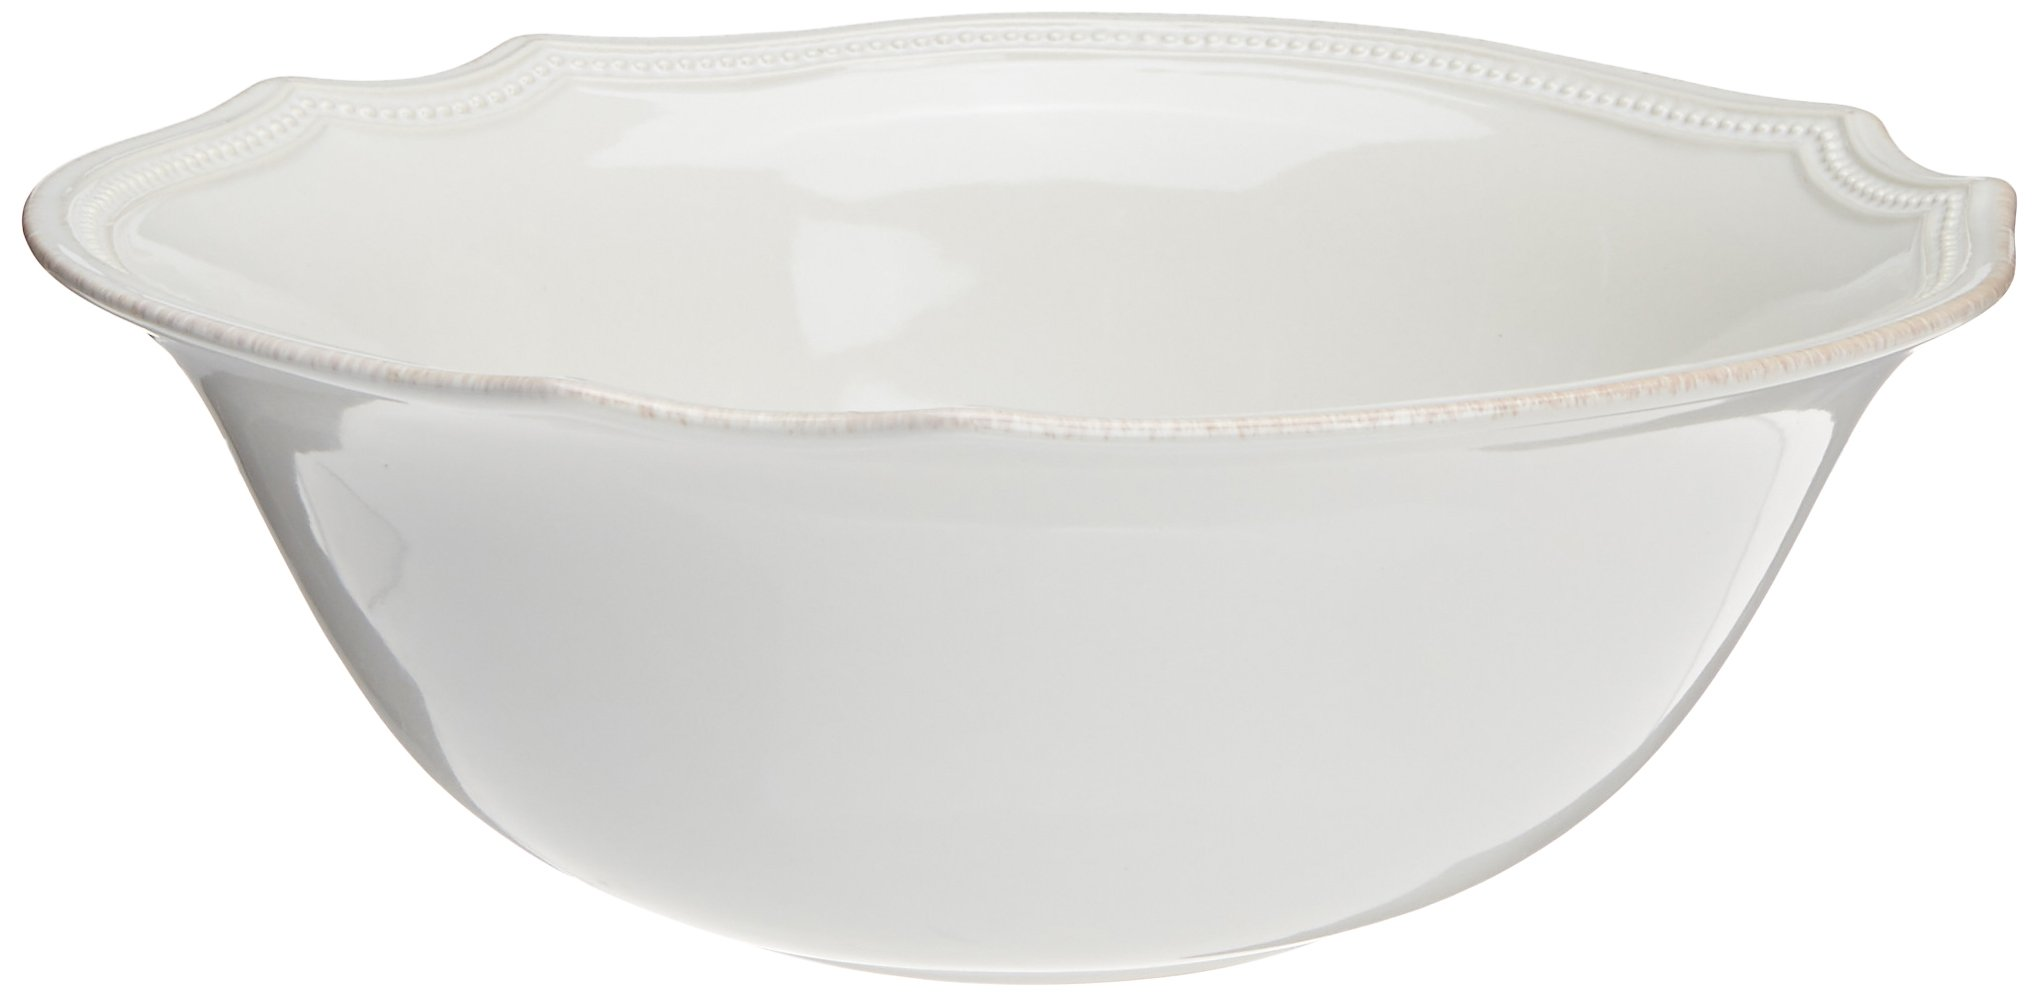 Lenox French Perle Bead Serving Bowl, 64-Ounce, White